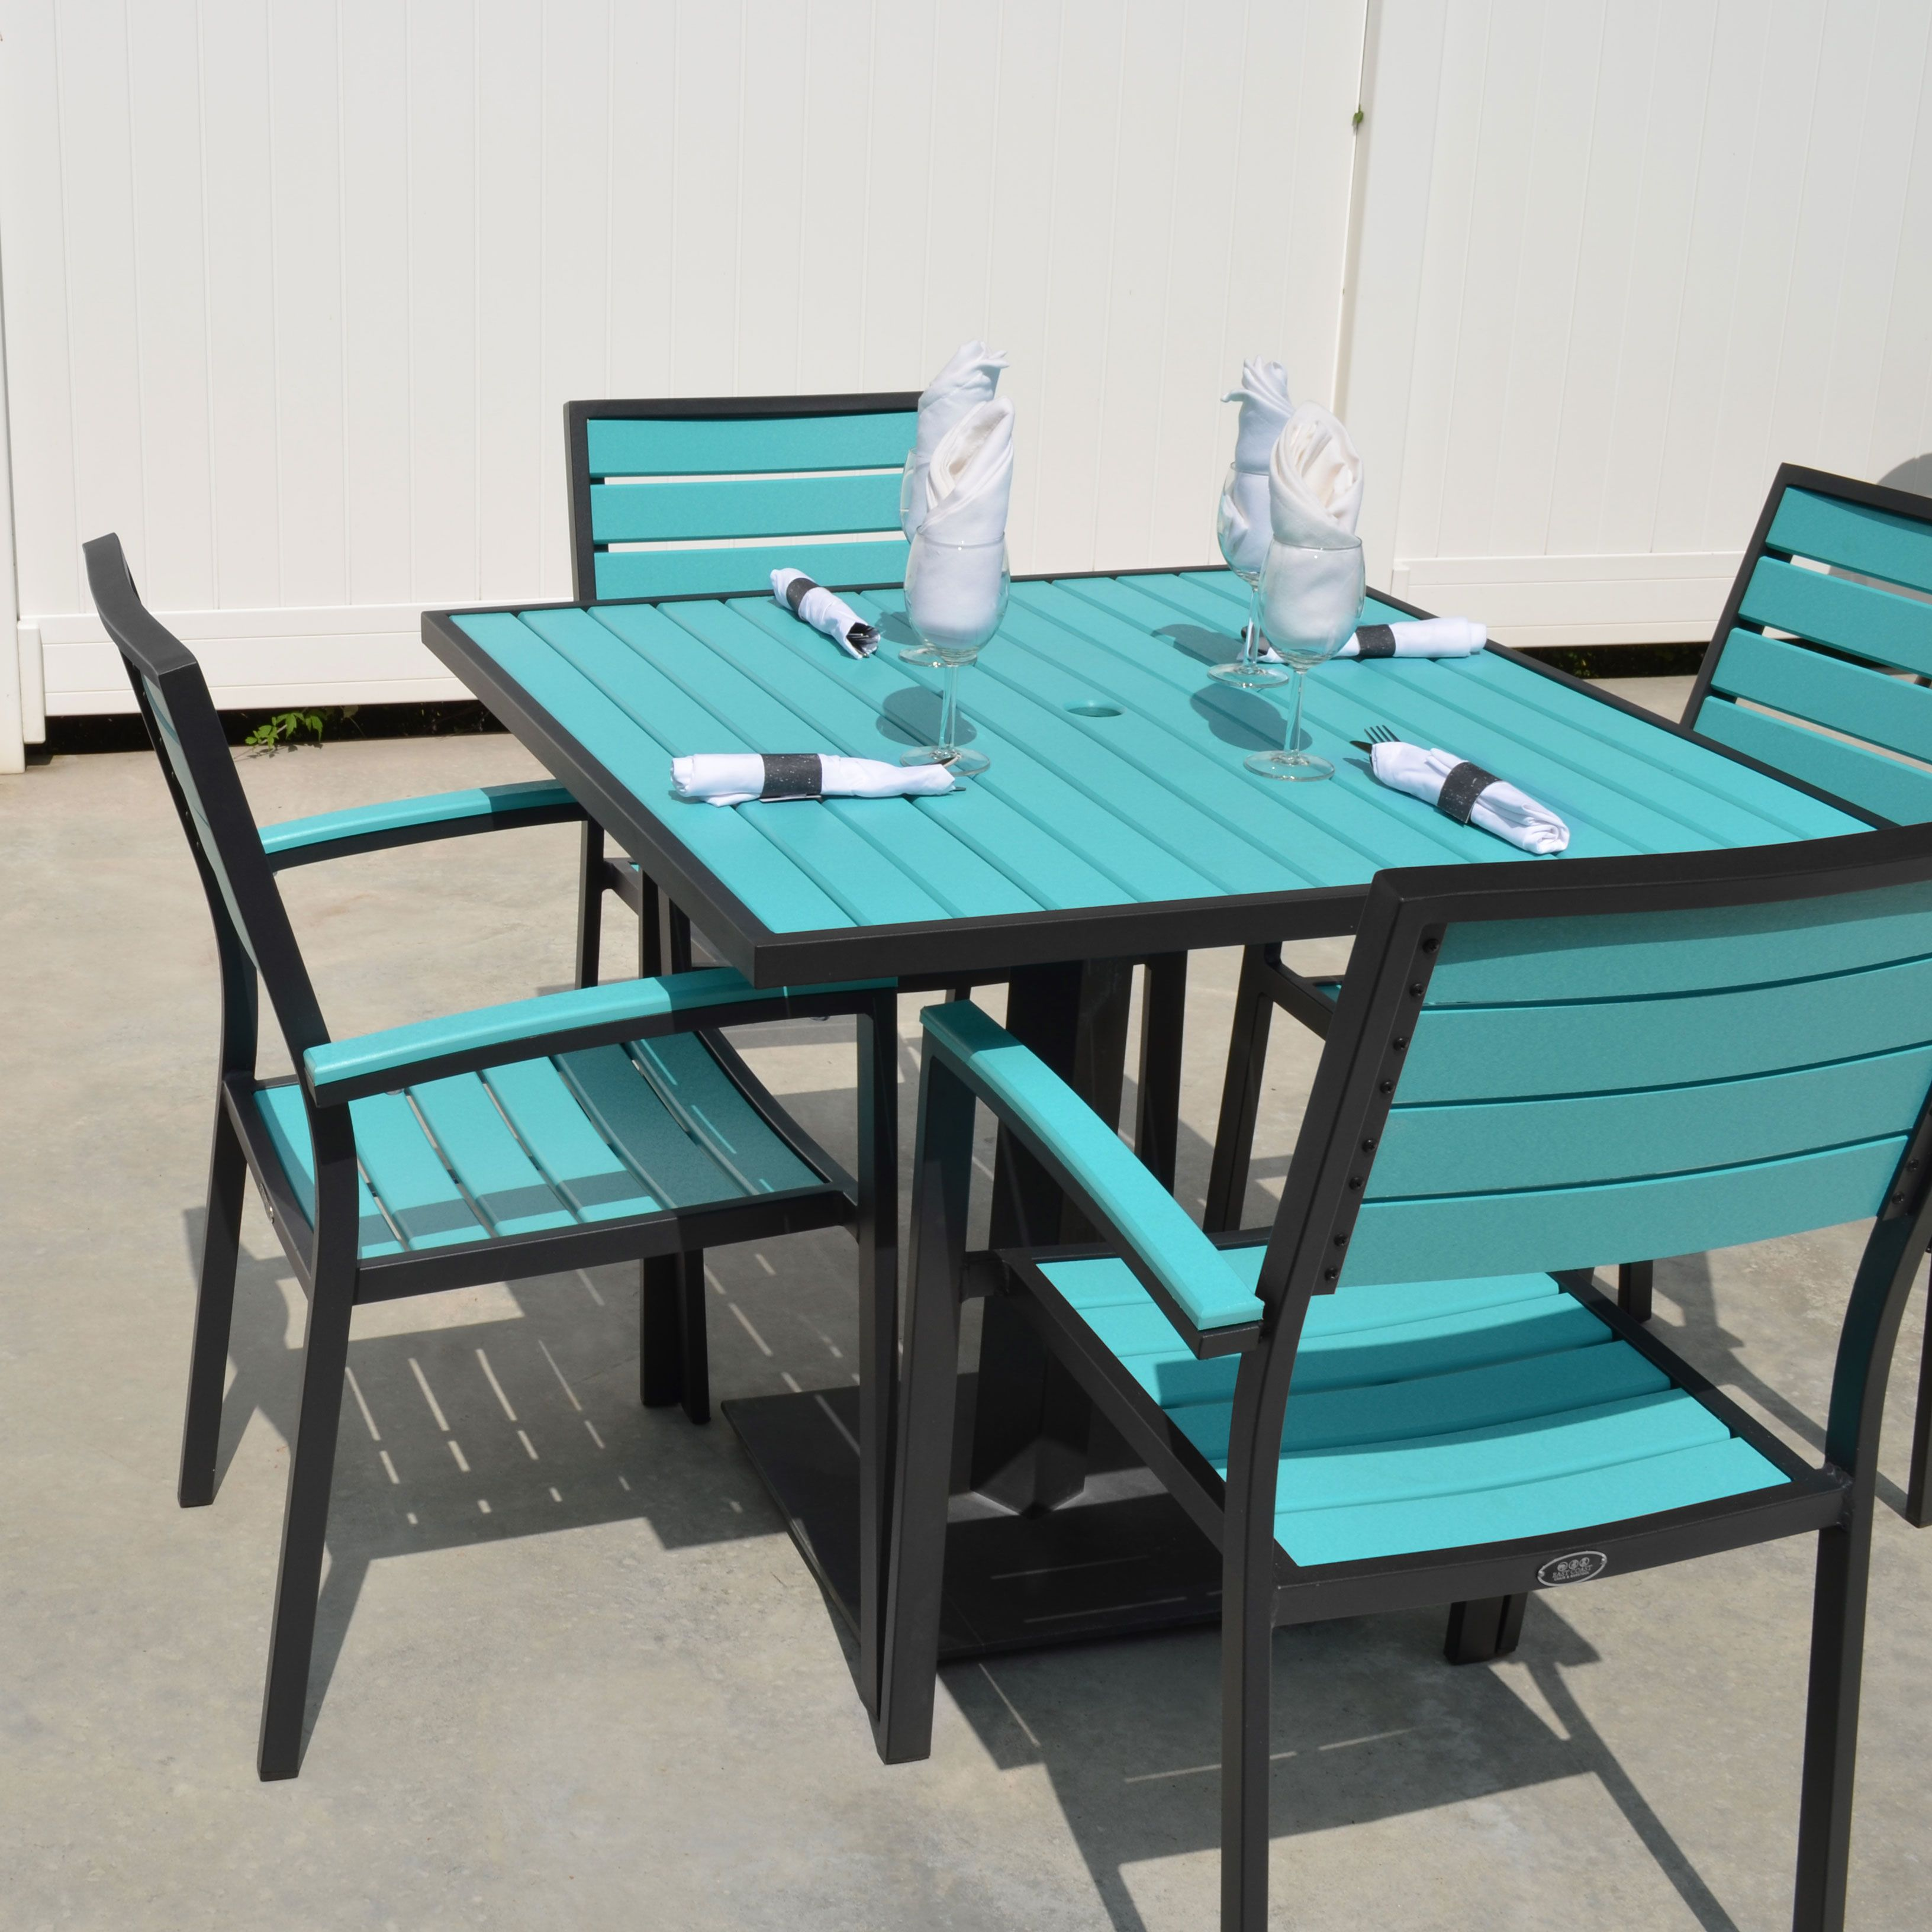 Beautiful Outdoor Restaurant Furniture From East Coast Chair Barstool Commercial Outdoor Furniture Outdoor Furniture Sets Restaurant Furniture